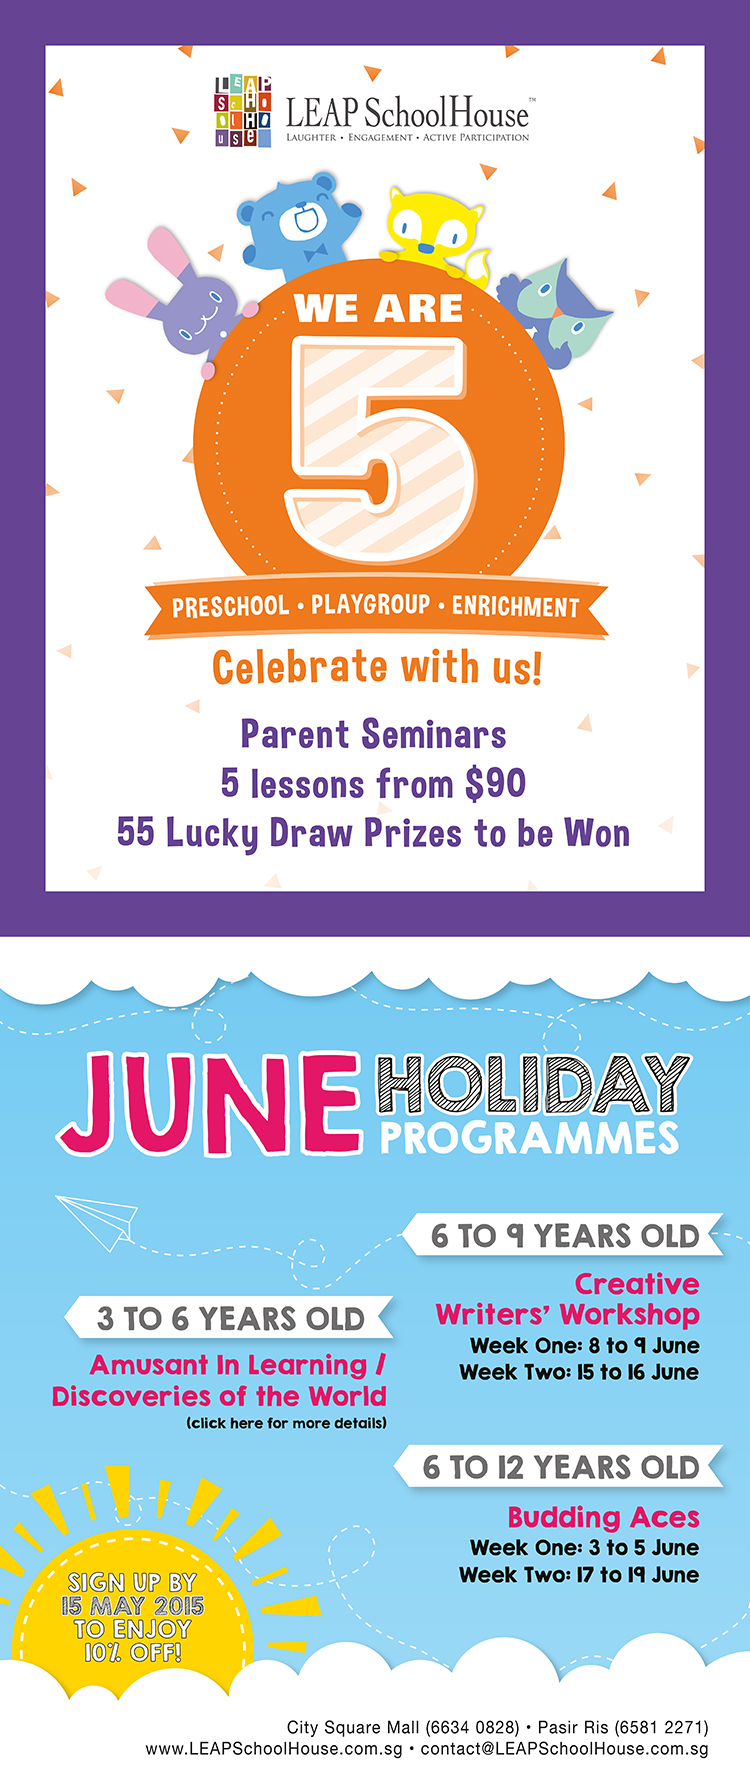 We are 5. Celebrate with us. Parent Seminars, 5 lessons from $90. 55 Lucky Draw Prizes to be Won. June Holiday Programmes for 3 to 12 years old. Amusant in Learning / Discoveries of the World, Creative Writers' workshop and Budding Aces. Sign up 15 May 2015 to enjoy 10% Off!